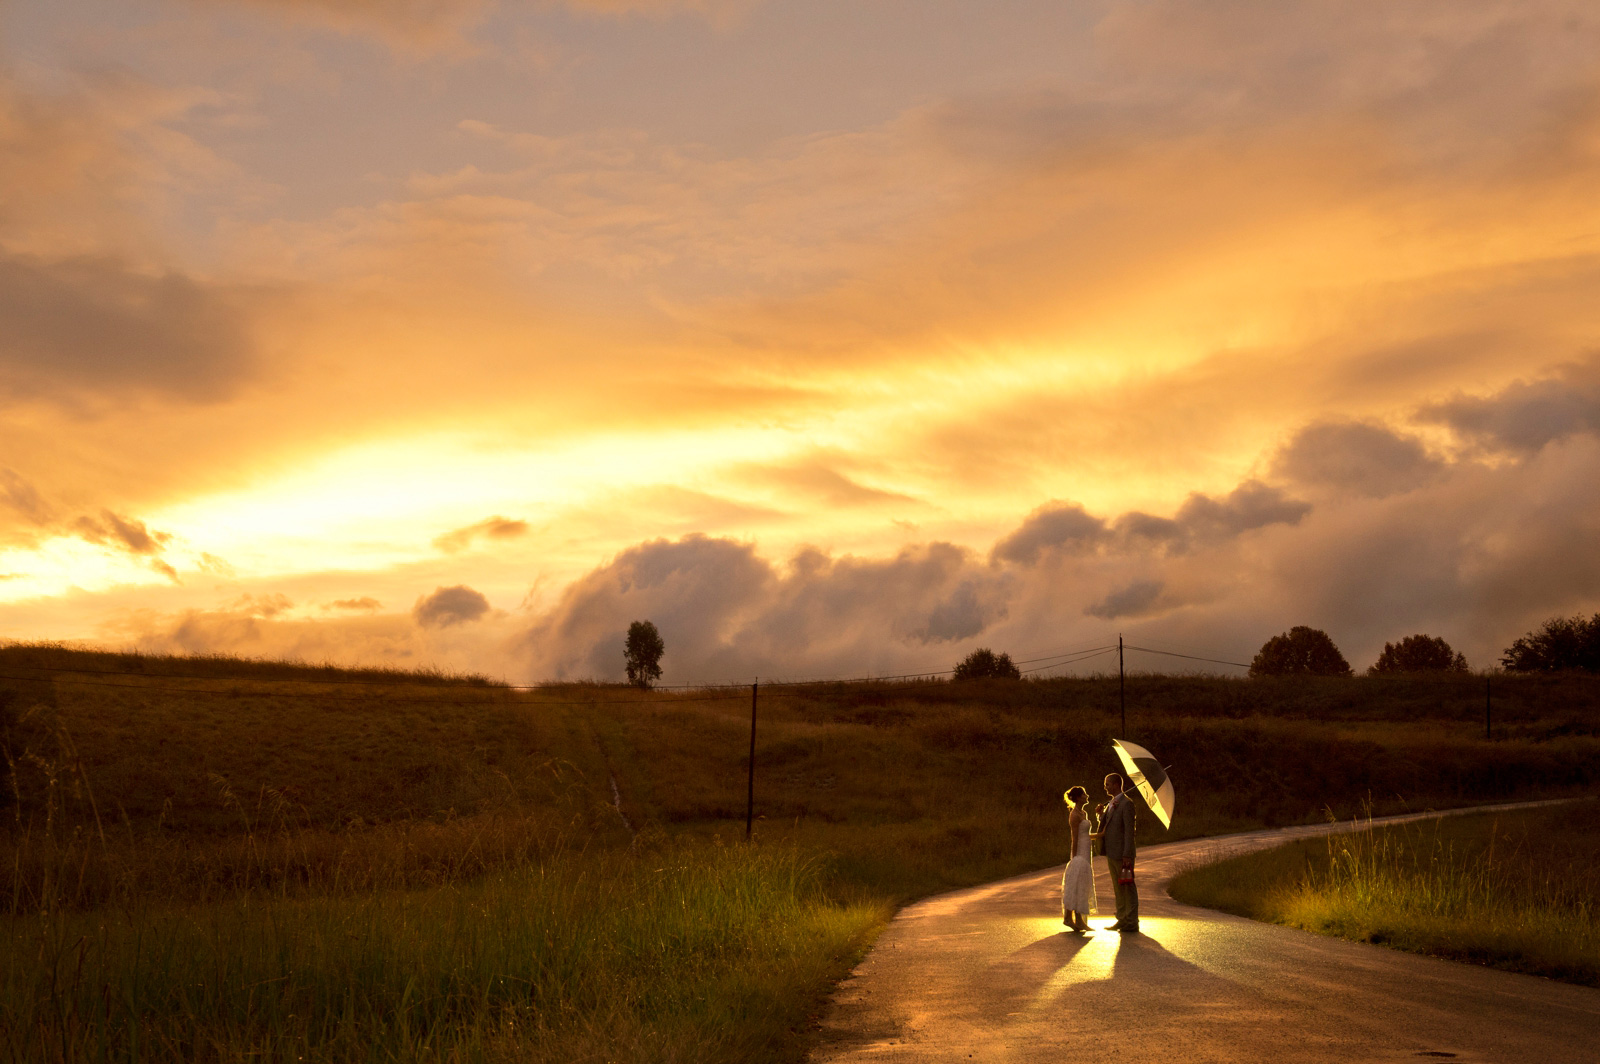 bride and groom on a road at sunset